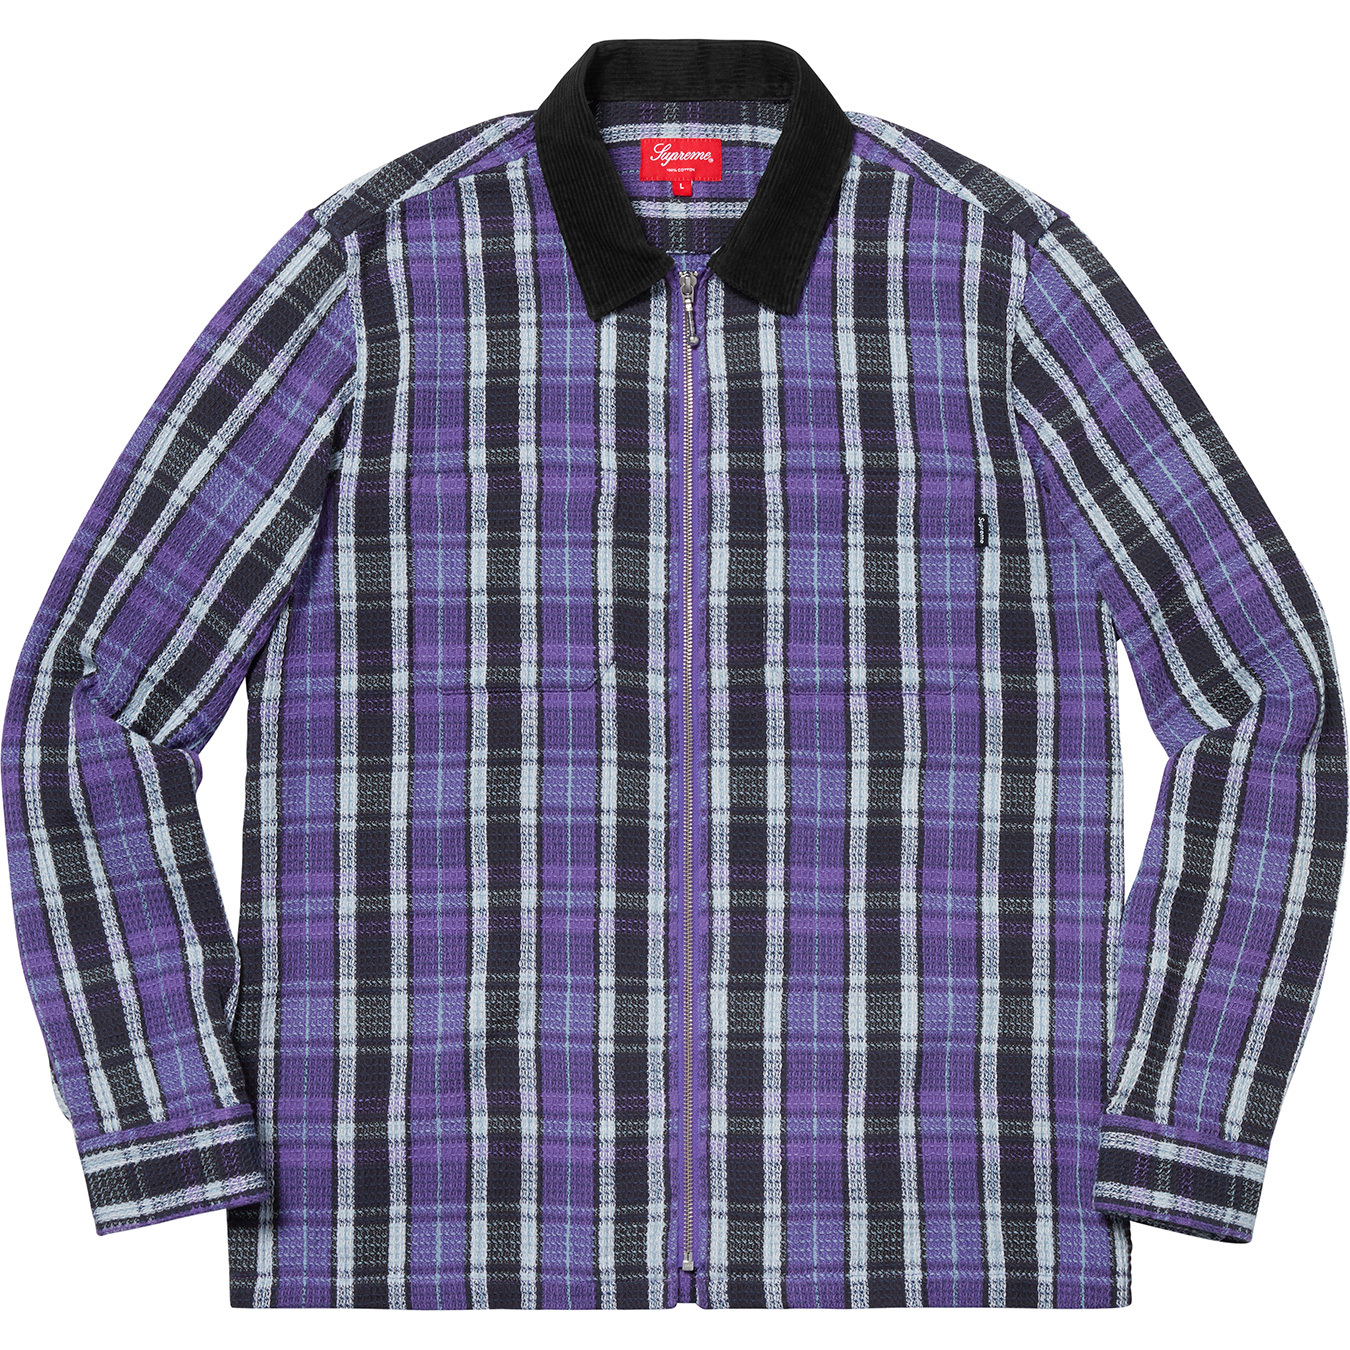 supreme-18aw-fall-winter-plaid-thermal-zip-up-shirt